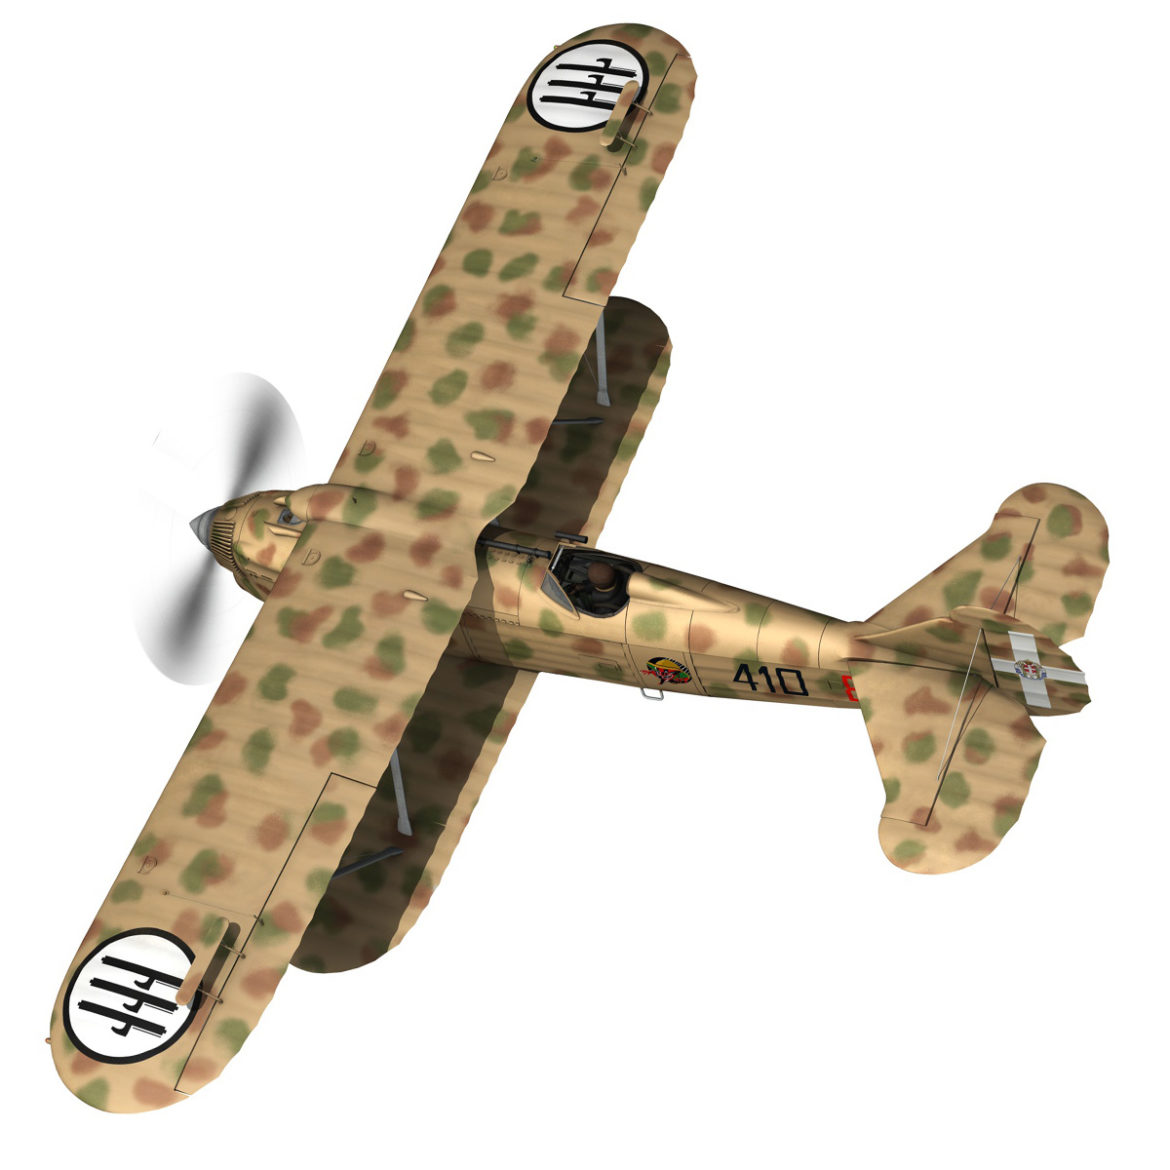 fiat cr.32 – italy airforce – 410 squadriglia 3d model fbx c4d lwo obj 307544